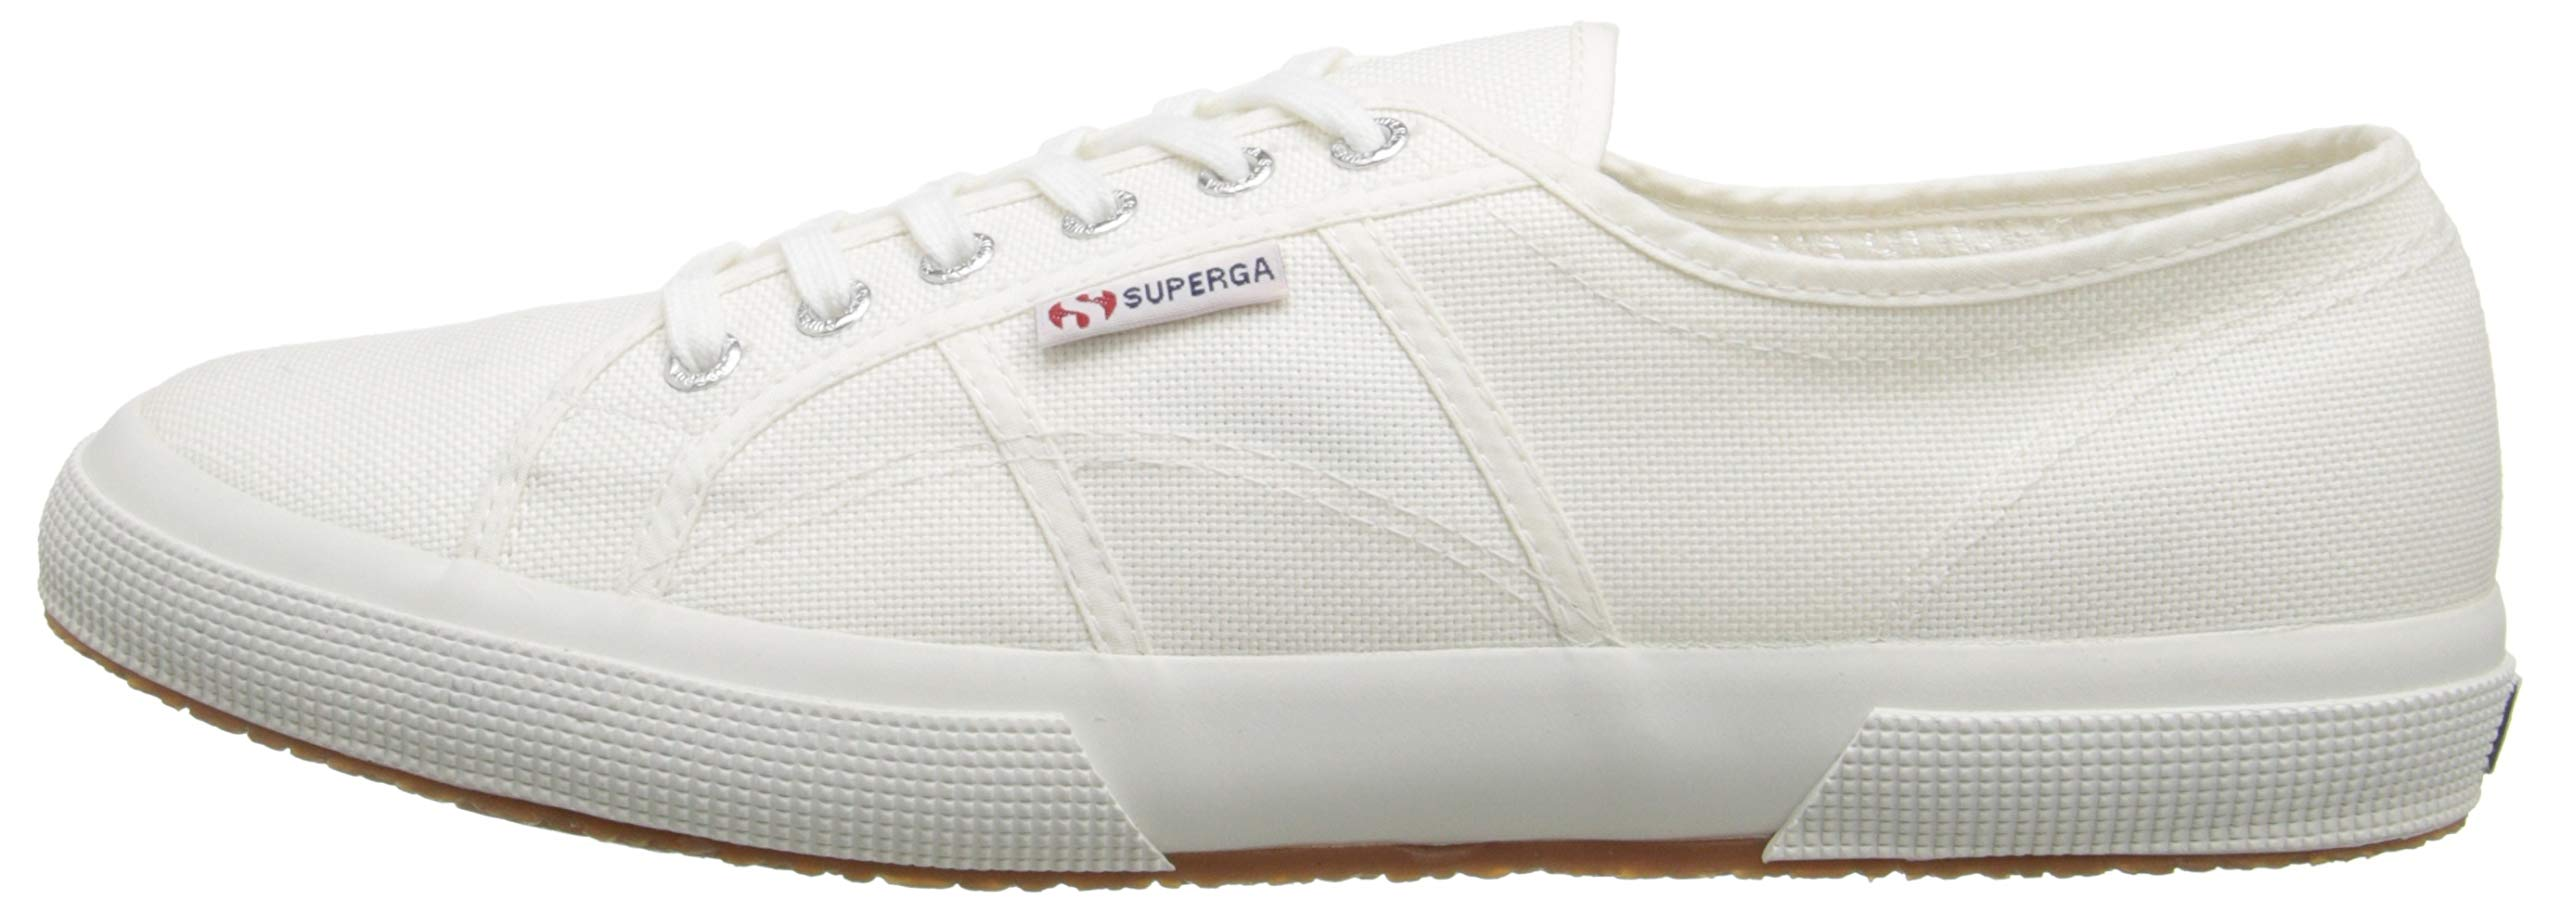 Superga 2750 Cotu Classic, Unisex Adults' Low-Top Sneakers, White, 7.5 UK (41.5 EU) by Superga (Image #5)